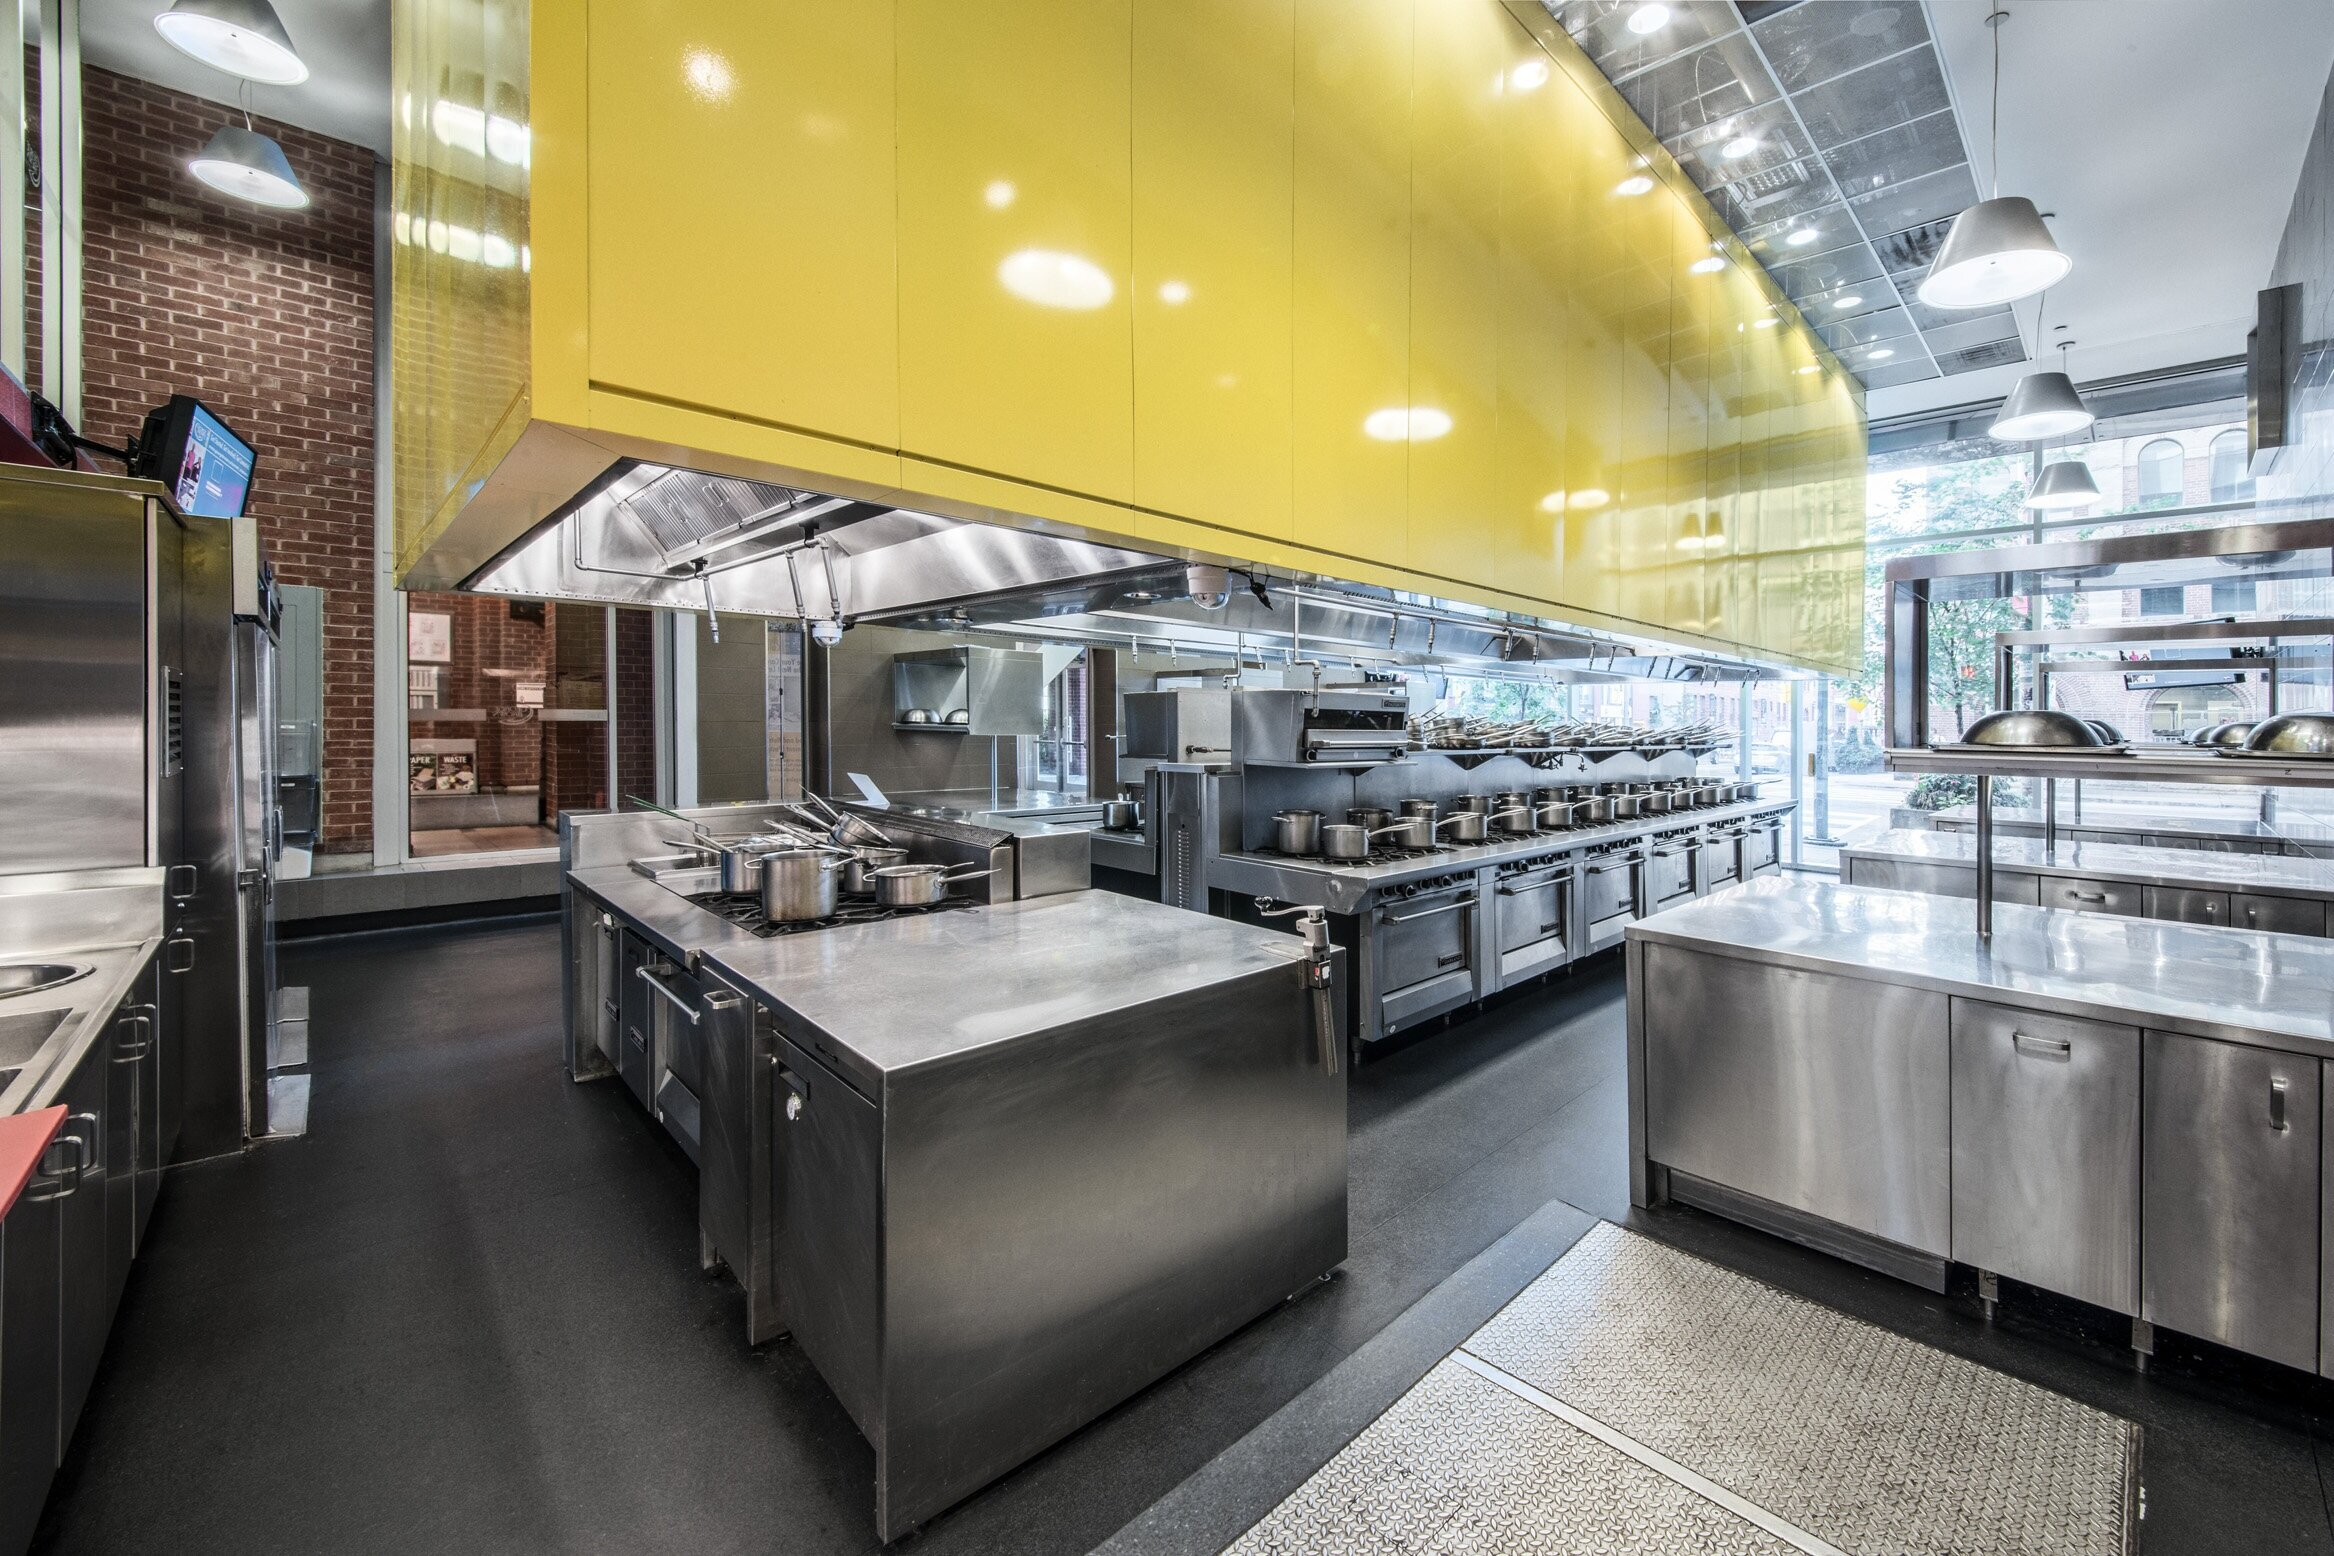 Second alternate view of a Culinary Kitchen Lab at the Centre for Hospitality & Culinary Arts at George Brown College